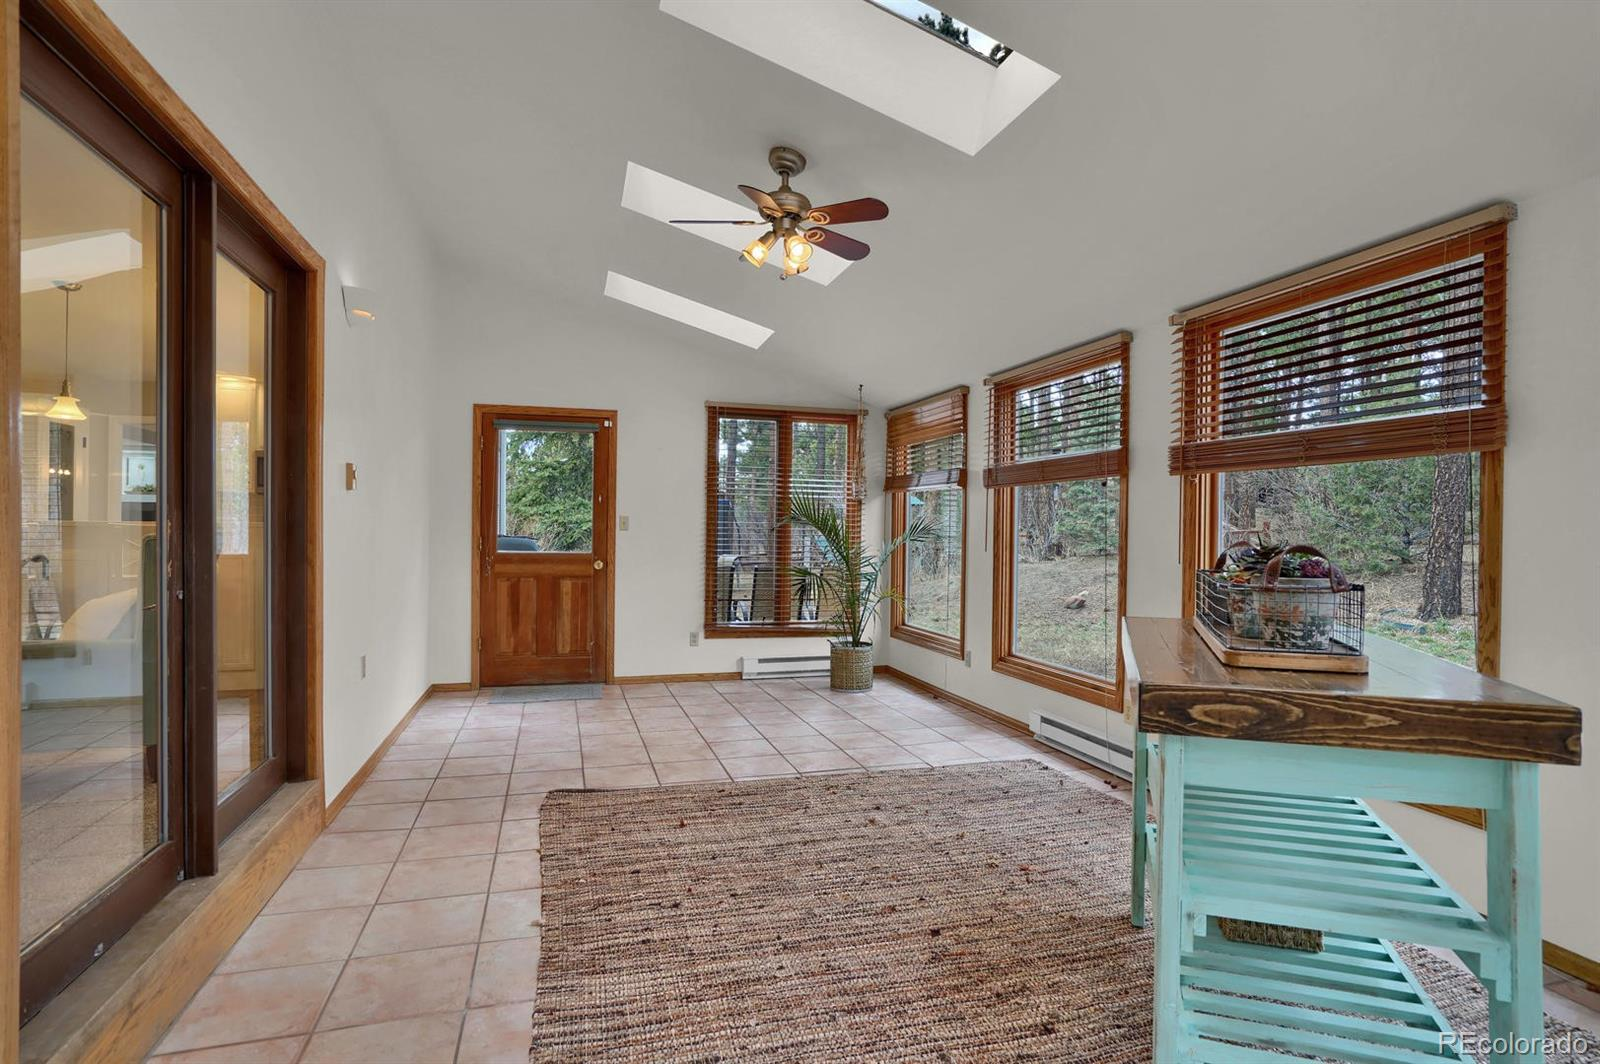 MLS# 2861241 - 9 - 19365 Doewood Drive, Monument, CO 80132